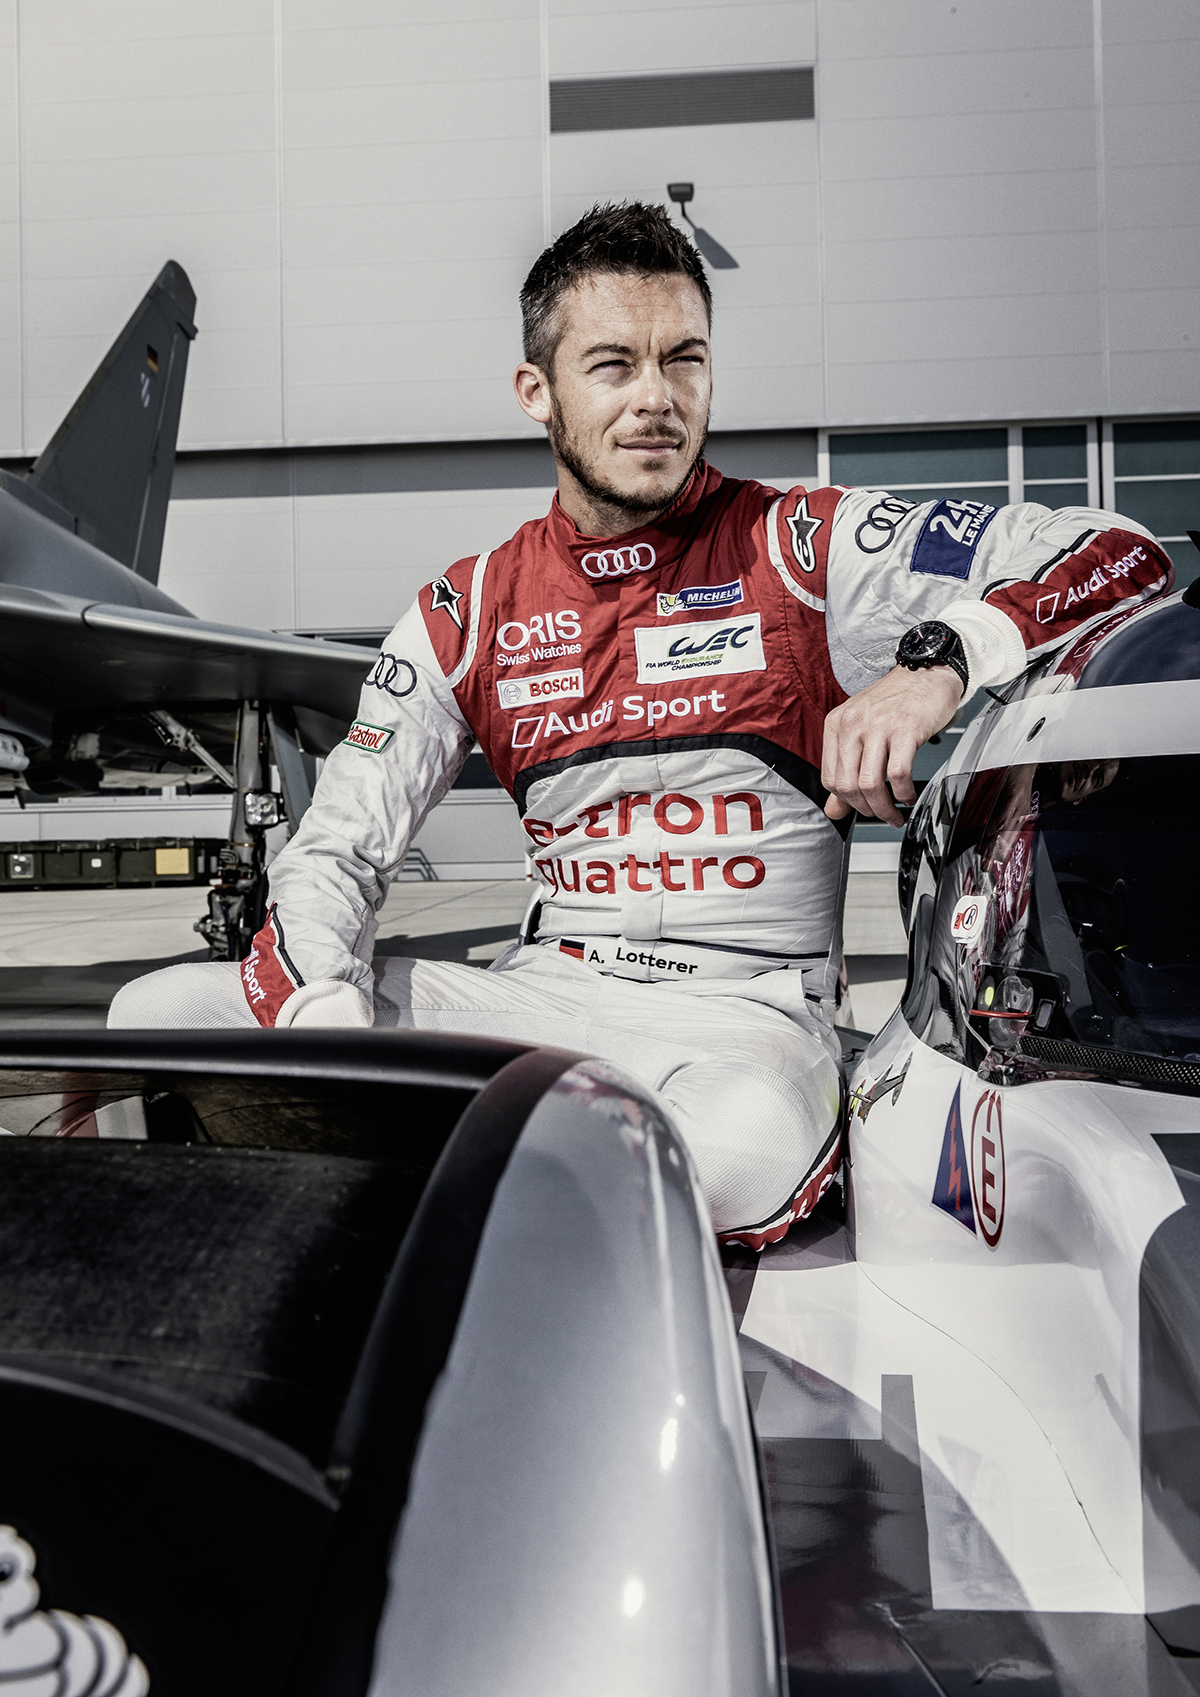 PASSION - FLIGHT CLUB André Lotterer Le Mans racing driver André Lotterer was born November 19, 1981 in Duisburg and grew up in Belgium. He has lived in Tokyo since 2003, where he is extremely successful as a racing driver. 2003 through 2015, he drove in the Super Formula (formerly Formula Nippon), winning the championship in 2011. 2003 through 2011, he was also active in the Super GT, securing the championship title in 2006 and 2009. Since 2012, he and his teammates have scored ten victories and one world championship for Audi. In the same period, he drove ten fastest race laps, including the legendary 3:17.475 minutes in Le Mans last year. It marks the fastest lap ever driven on La Sarthe, with an average speed of 248 km/h. Almost nothing seems to ruffle this likeable driver. His facial expression when he climbs into the cockpit is a youthful smile and restrained pleasure.